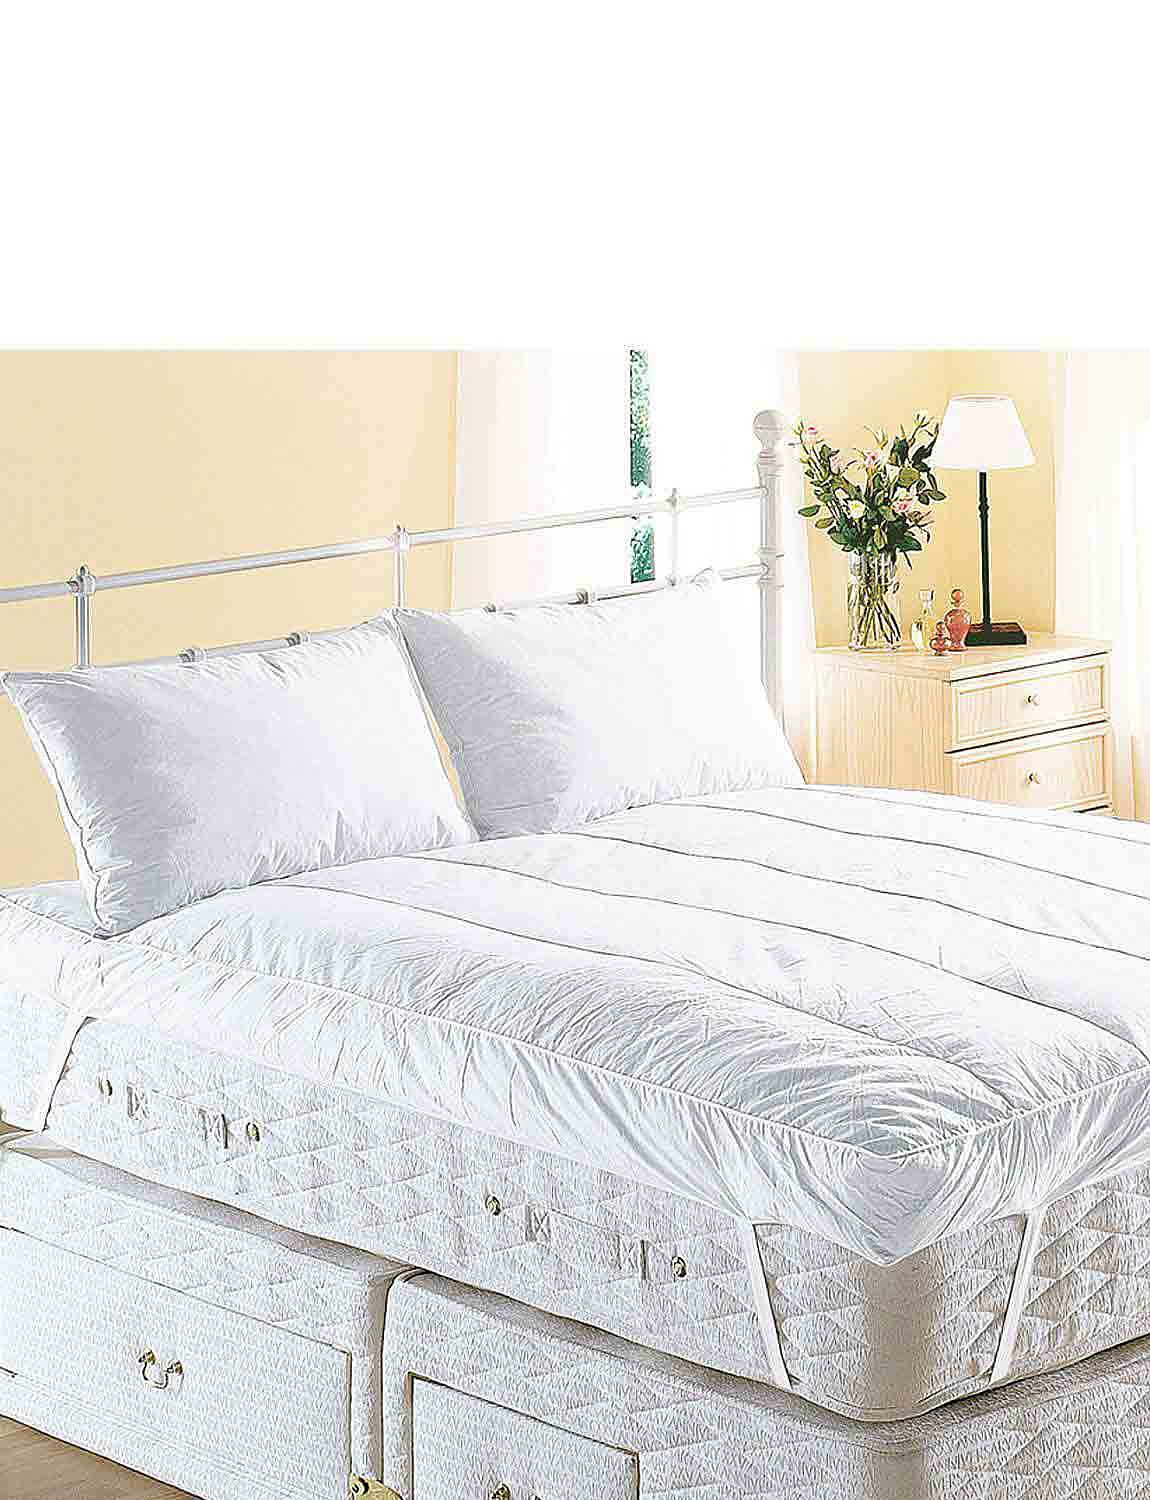 Extra Deep Luxury Feather Bed Mattress Topper by Downland - White